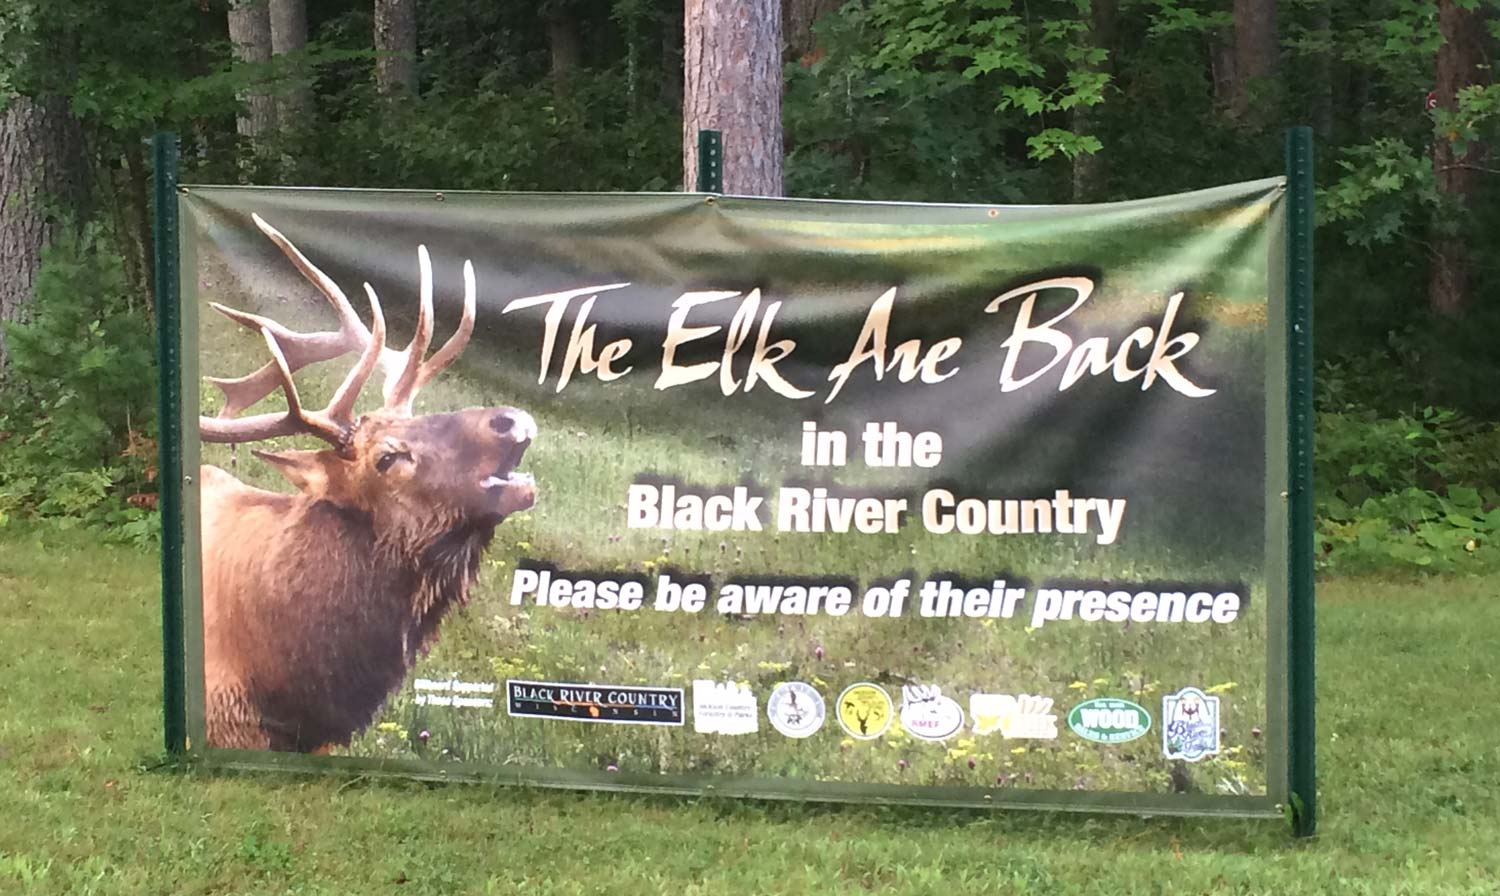 The Elk are back